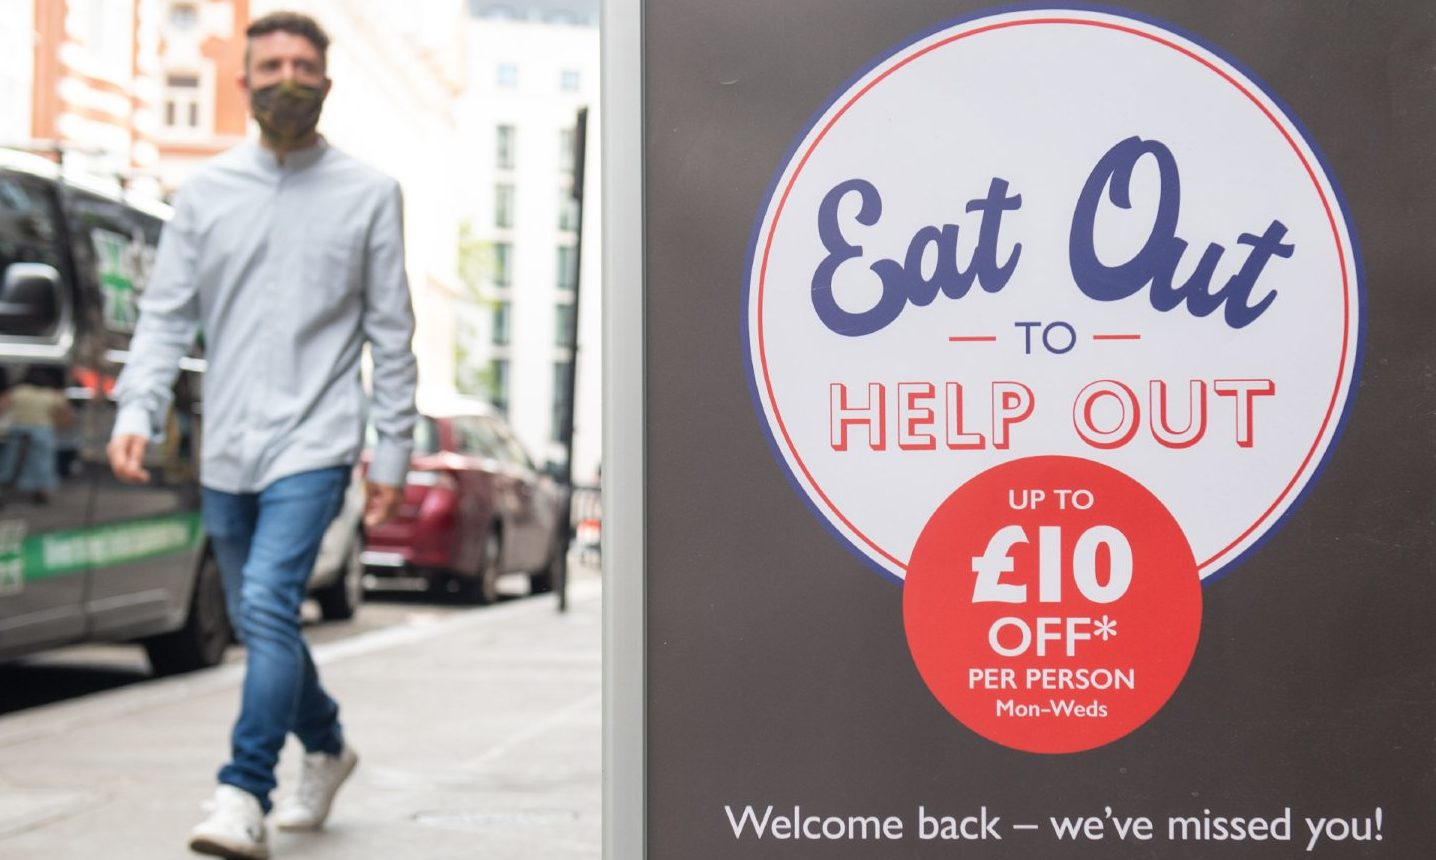 A man walks past an Eat Out To Help Out sign.